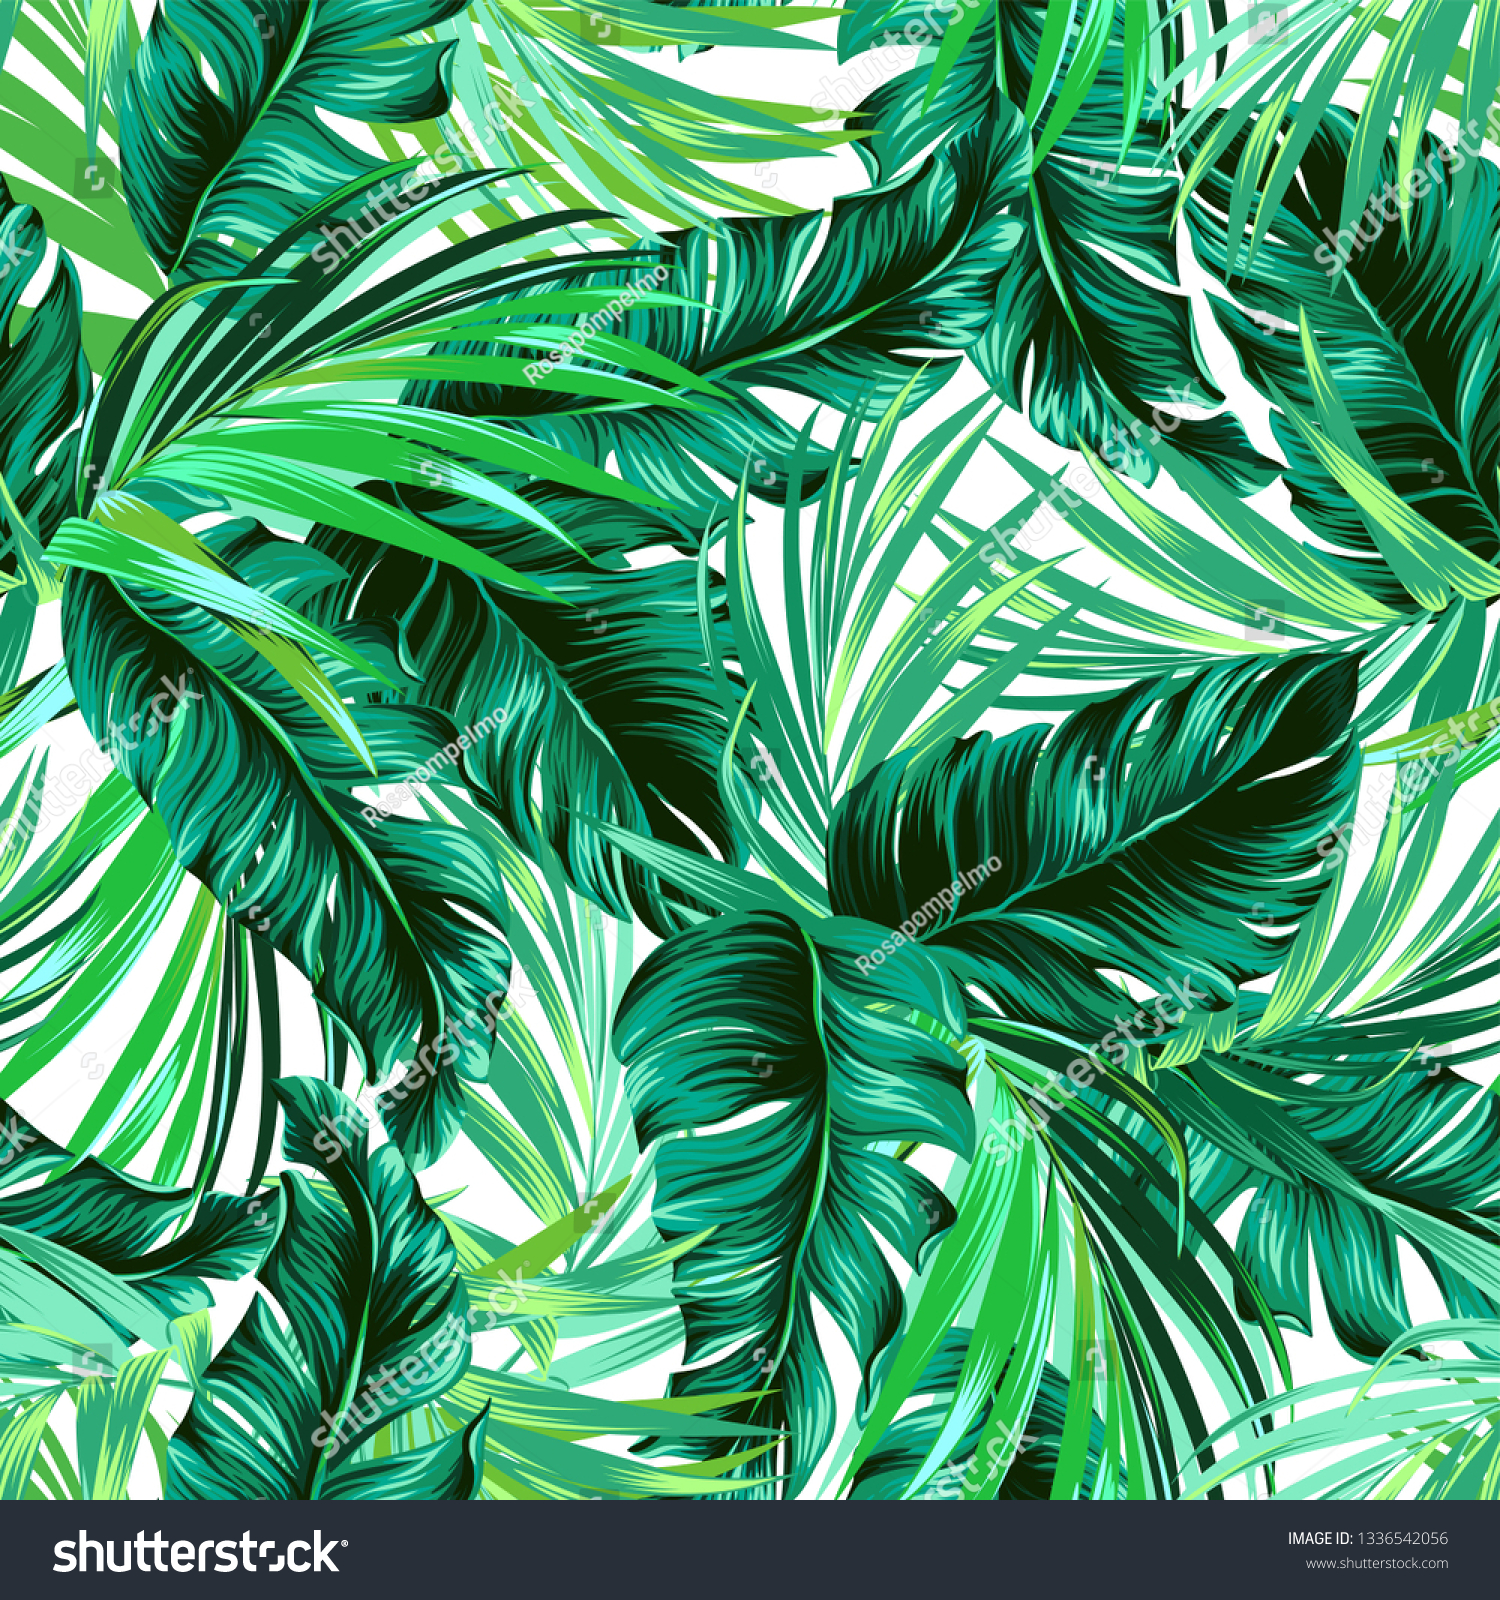 Teal Green Tropical Leaves Seamless Graphic Stock Vector Royalty Free 1336542056 Tropic paradise island landscape design one sketch outline drawing vector. https www shutterstock com image vector teal green tropical leaves seamless graphic 1336542056